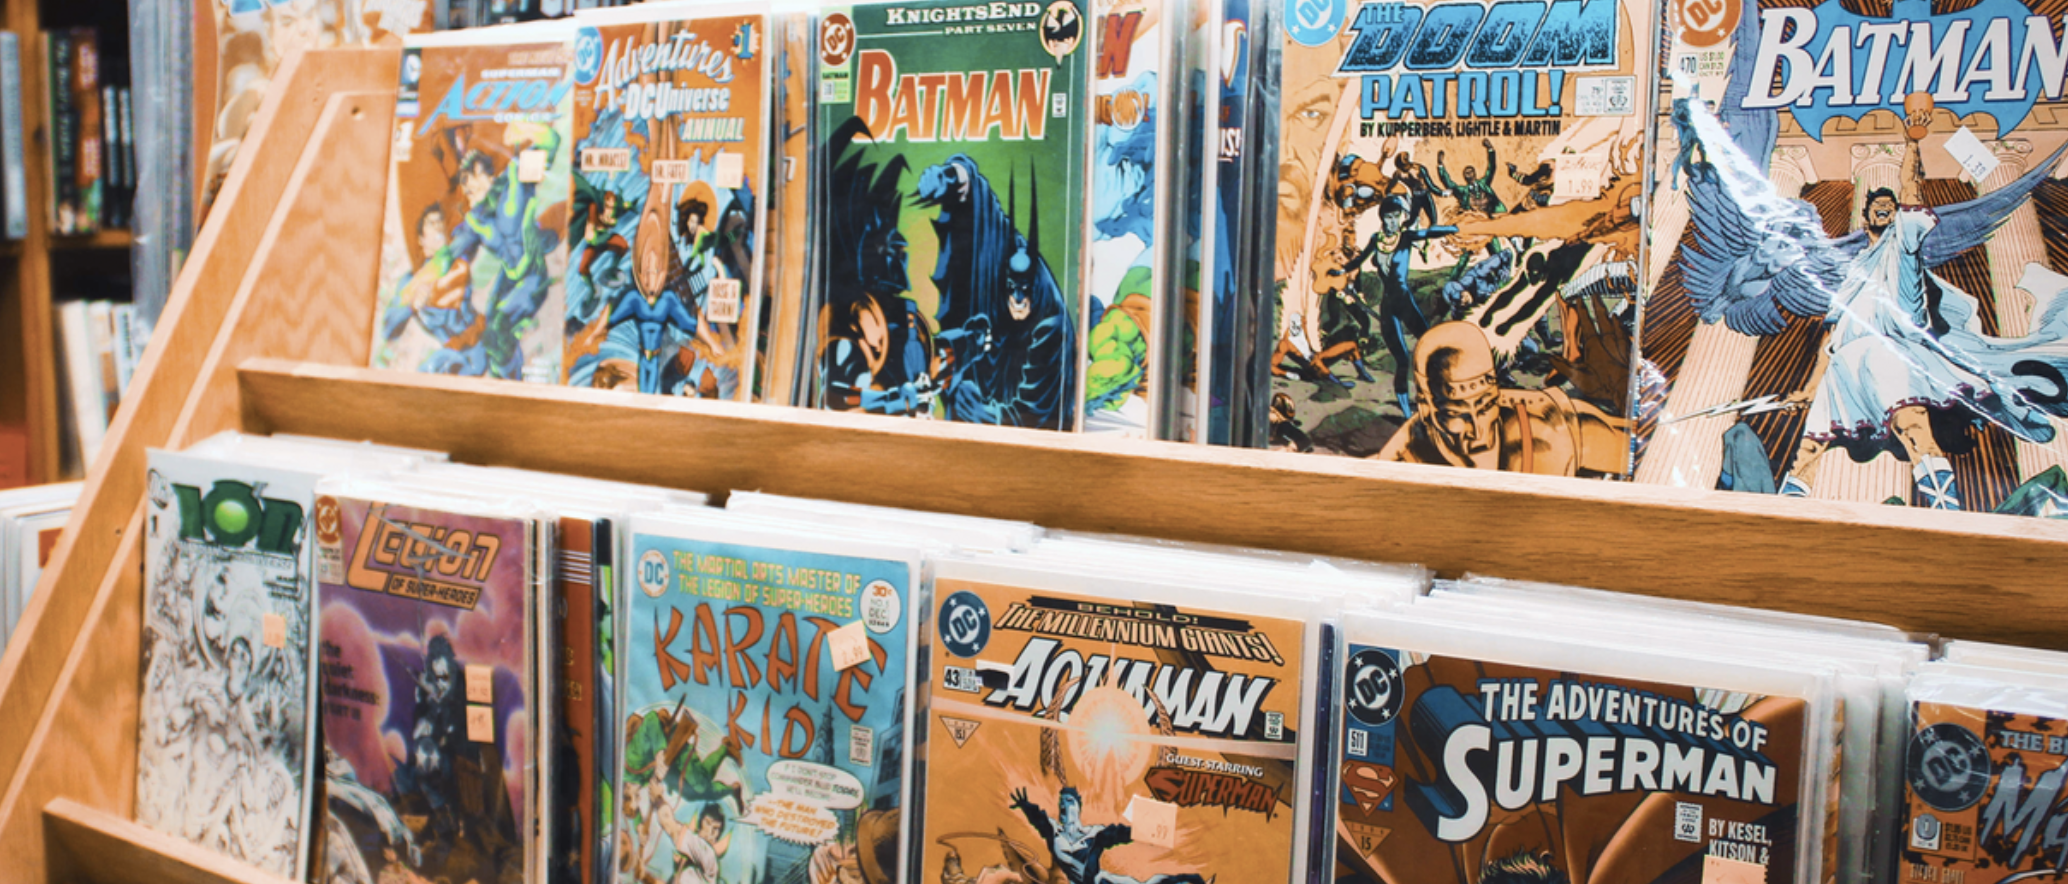 Superhero comic books.